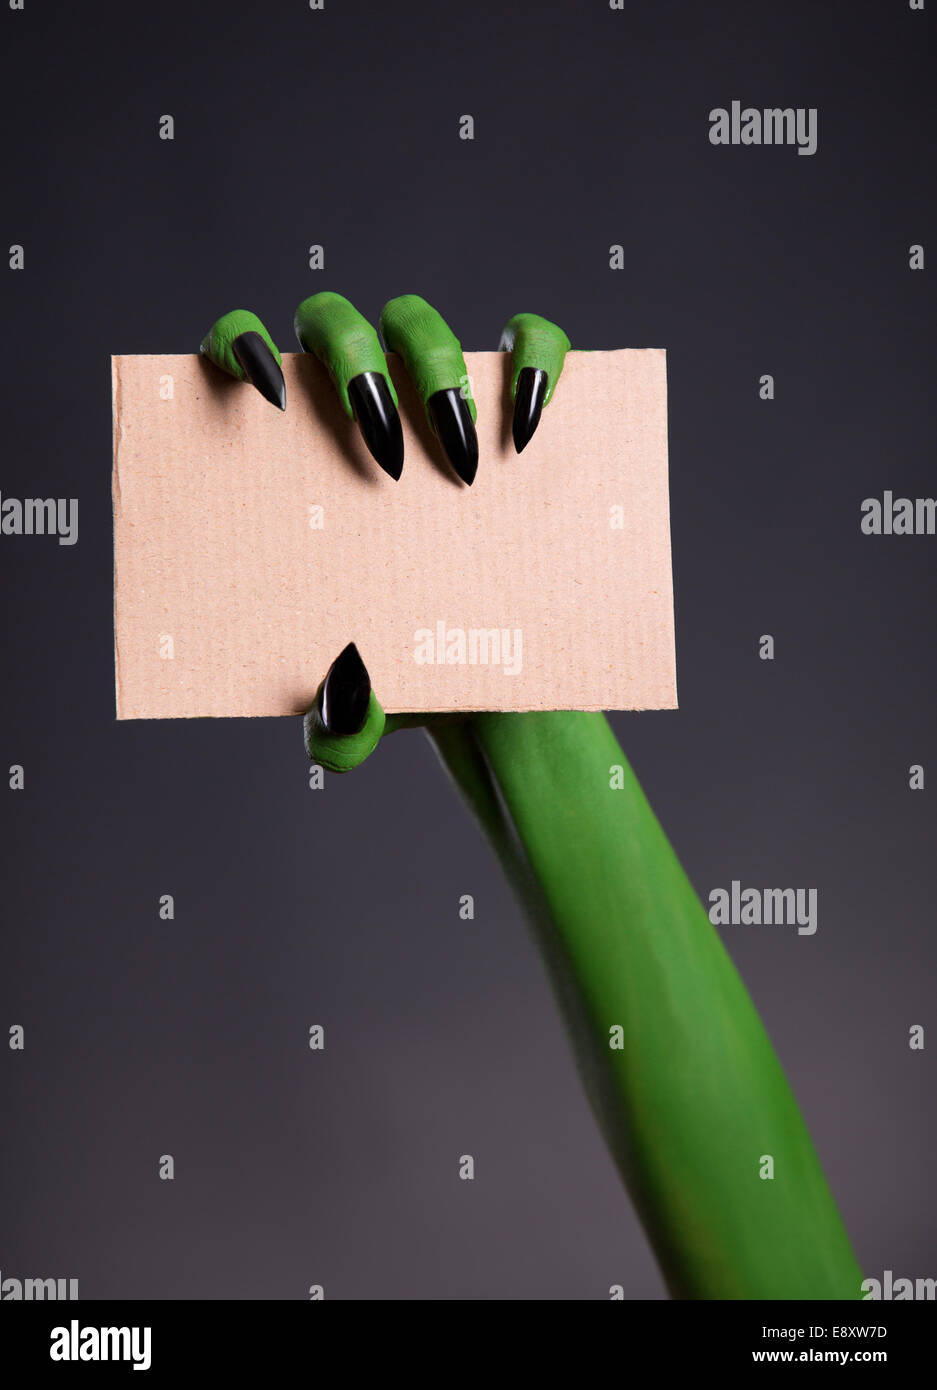 Sharp Nails Stockfotos & Sharp Nails Bilder - Alamy